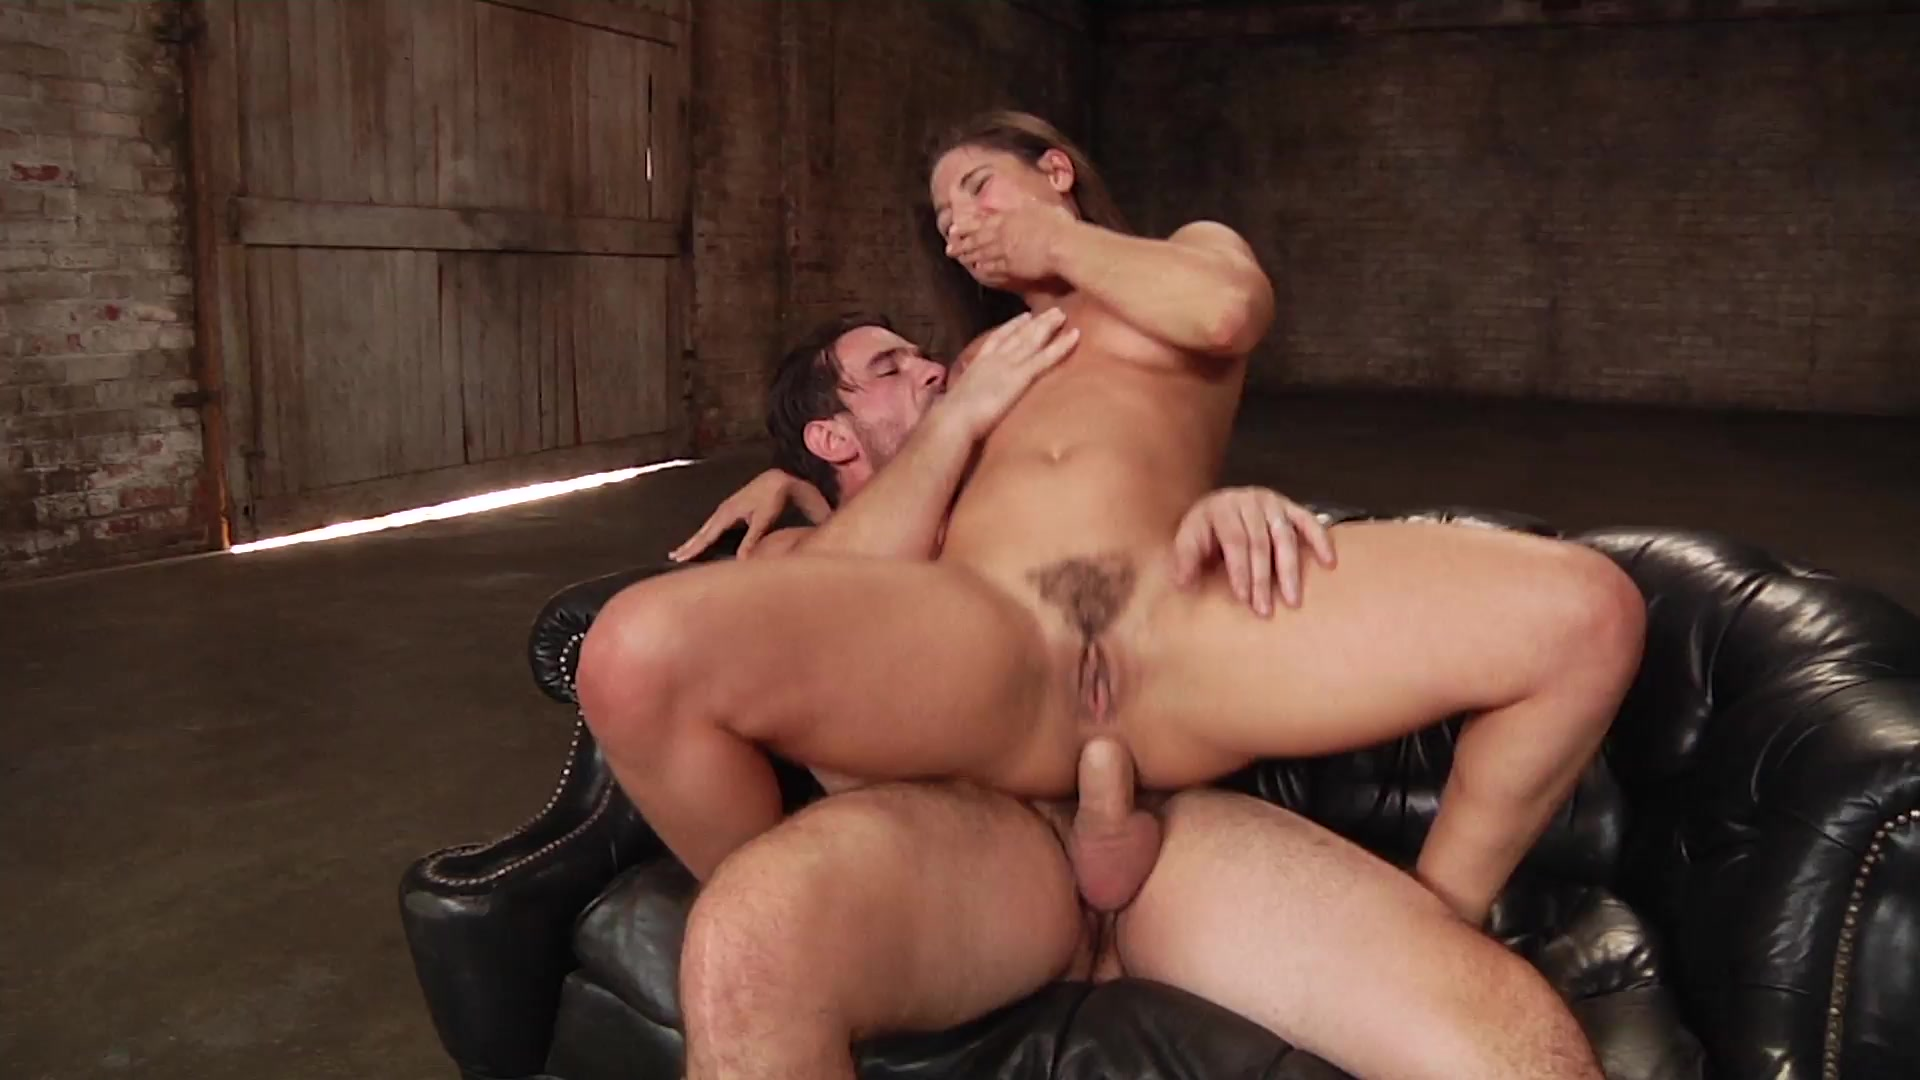 Scene with Abella Danger - image 16 out of 20